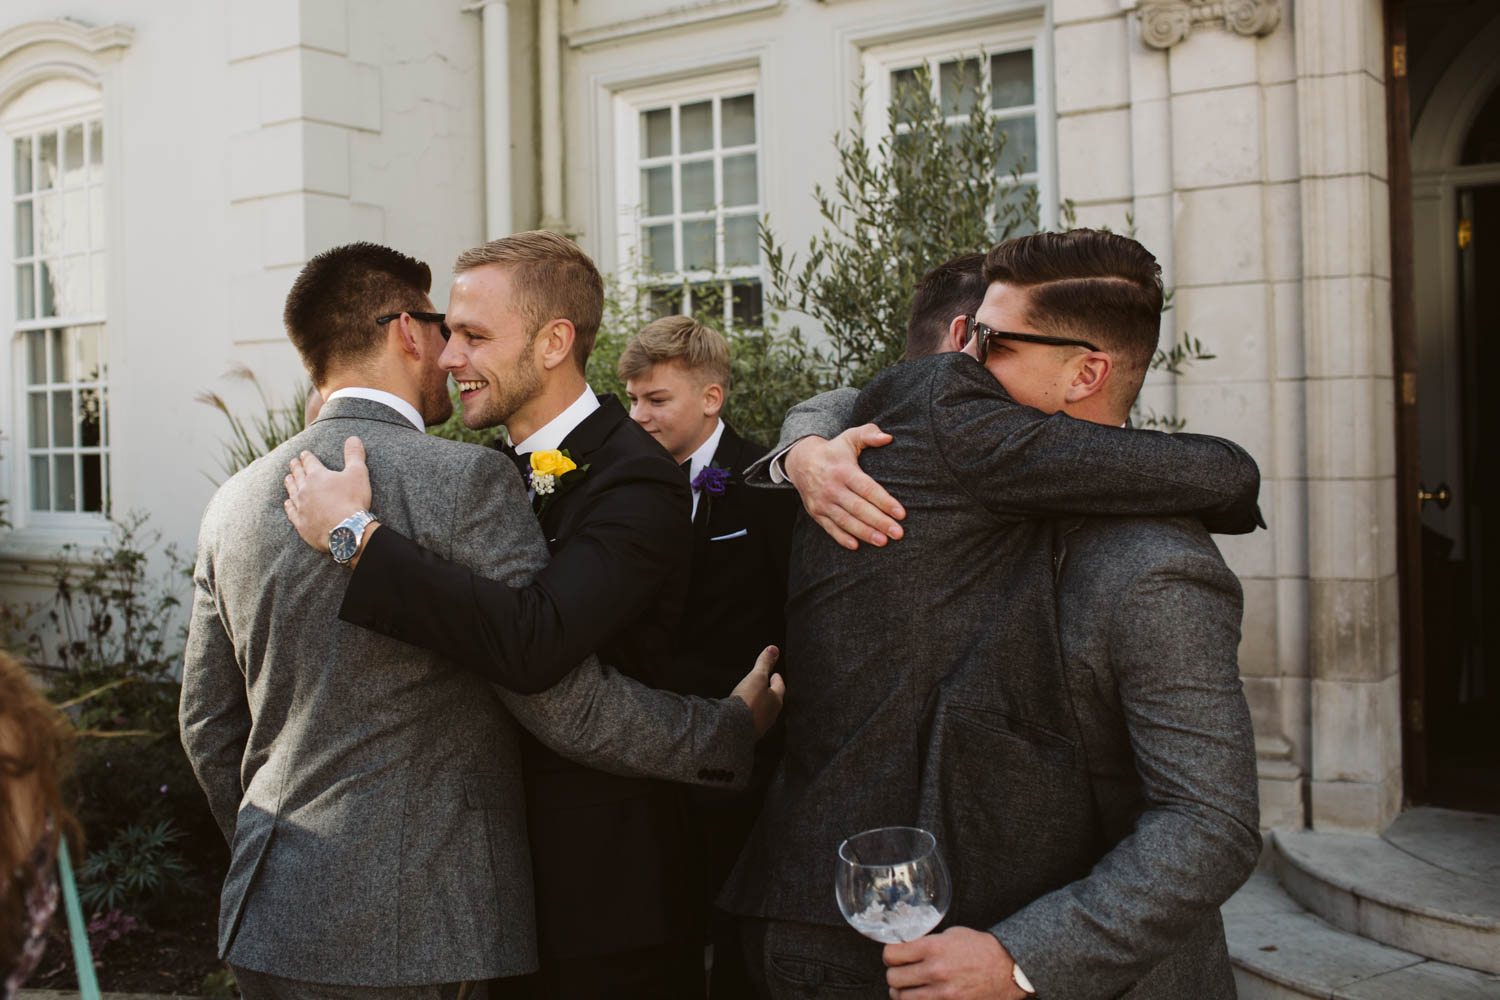 the groom and Brest man hugging with guests